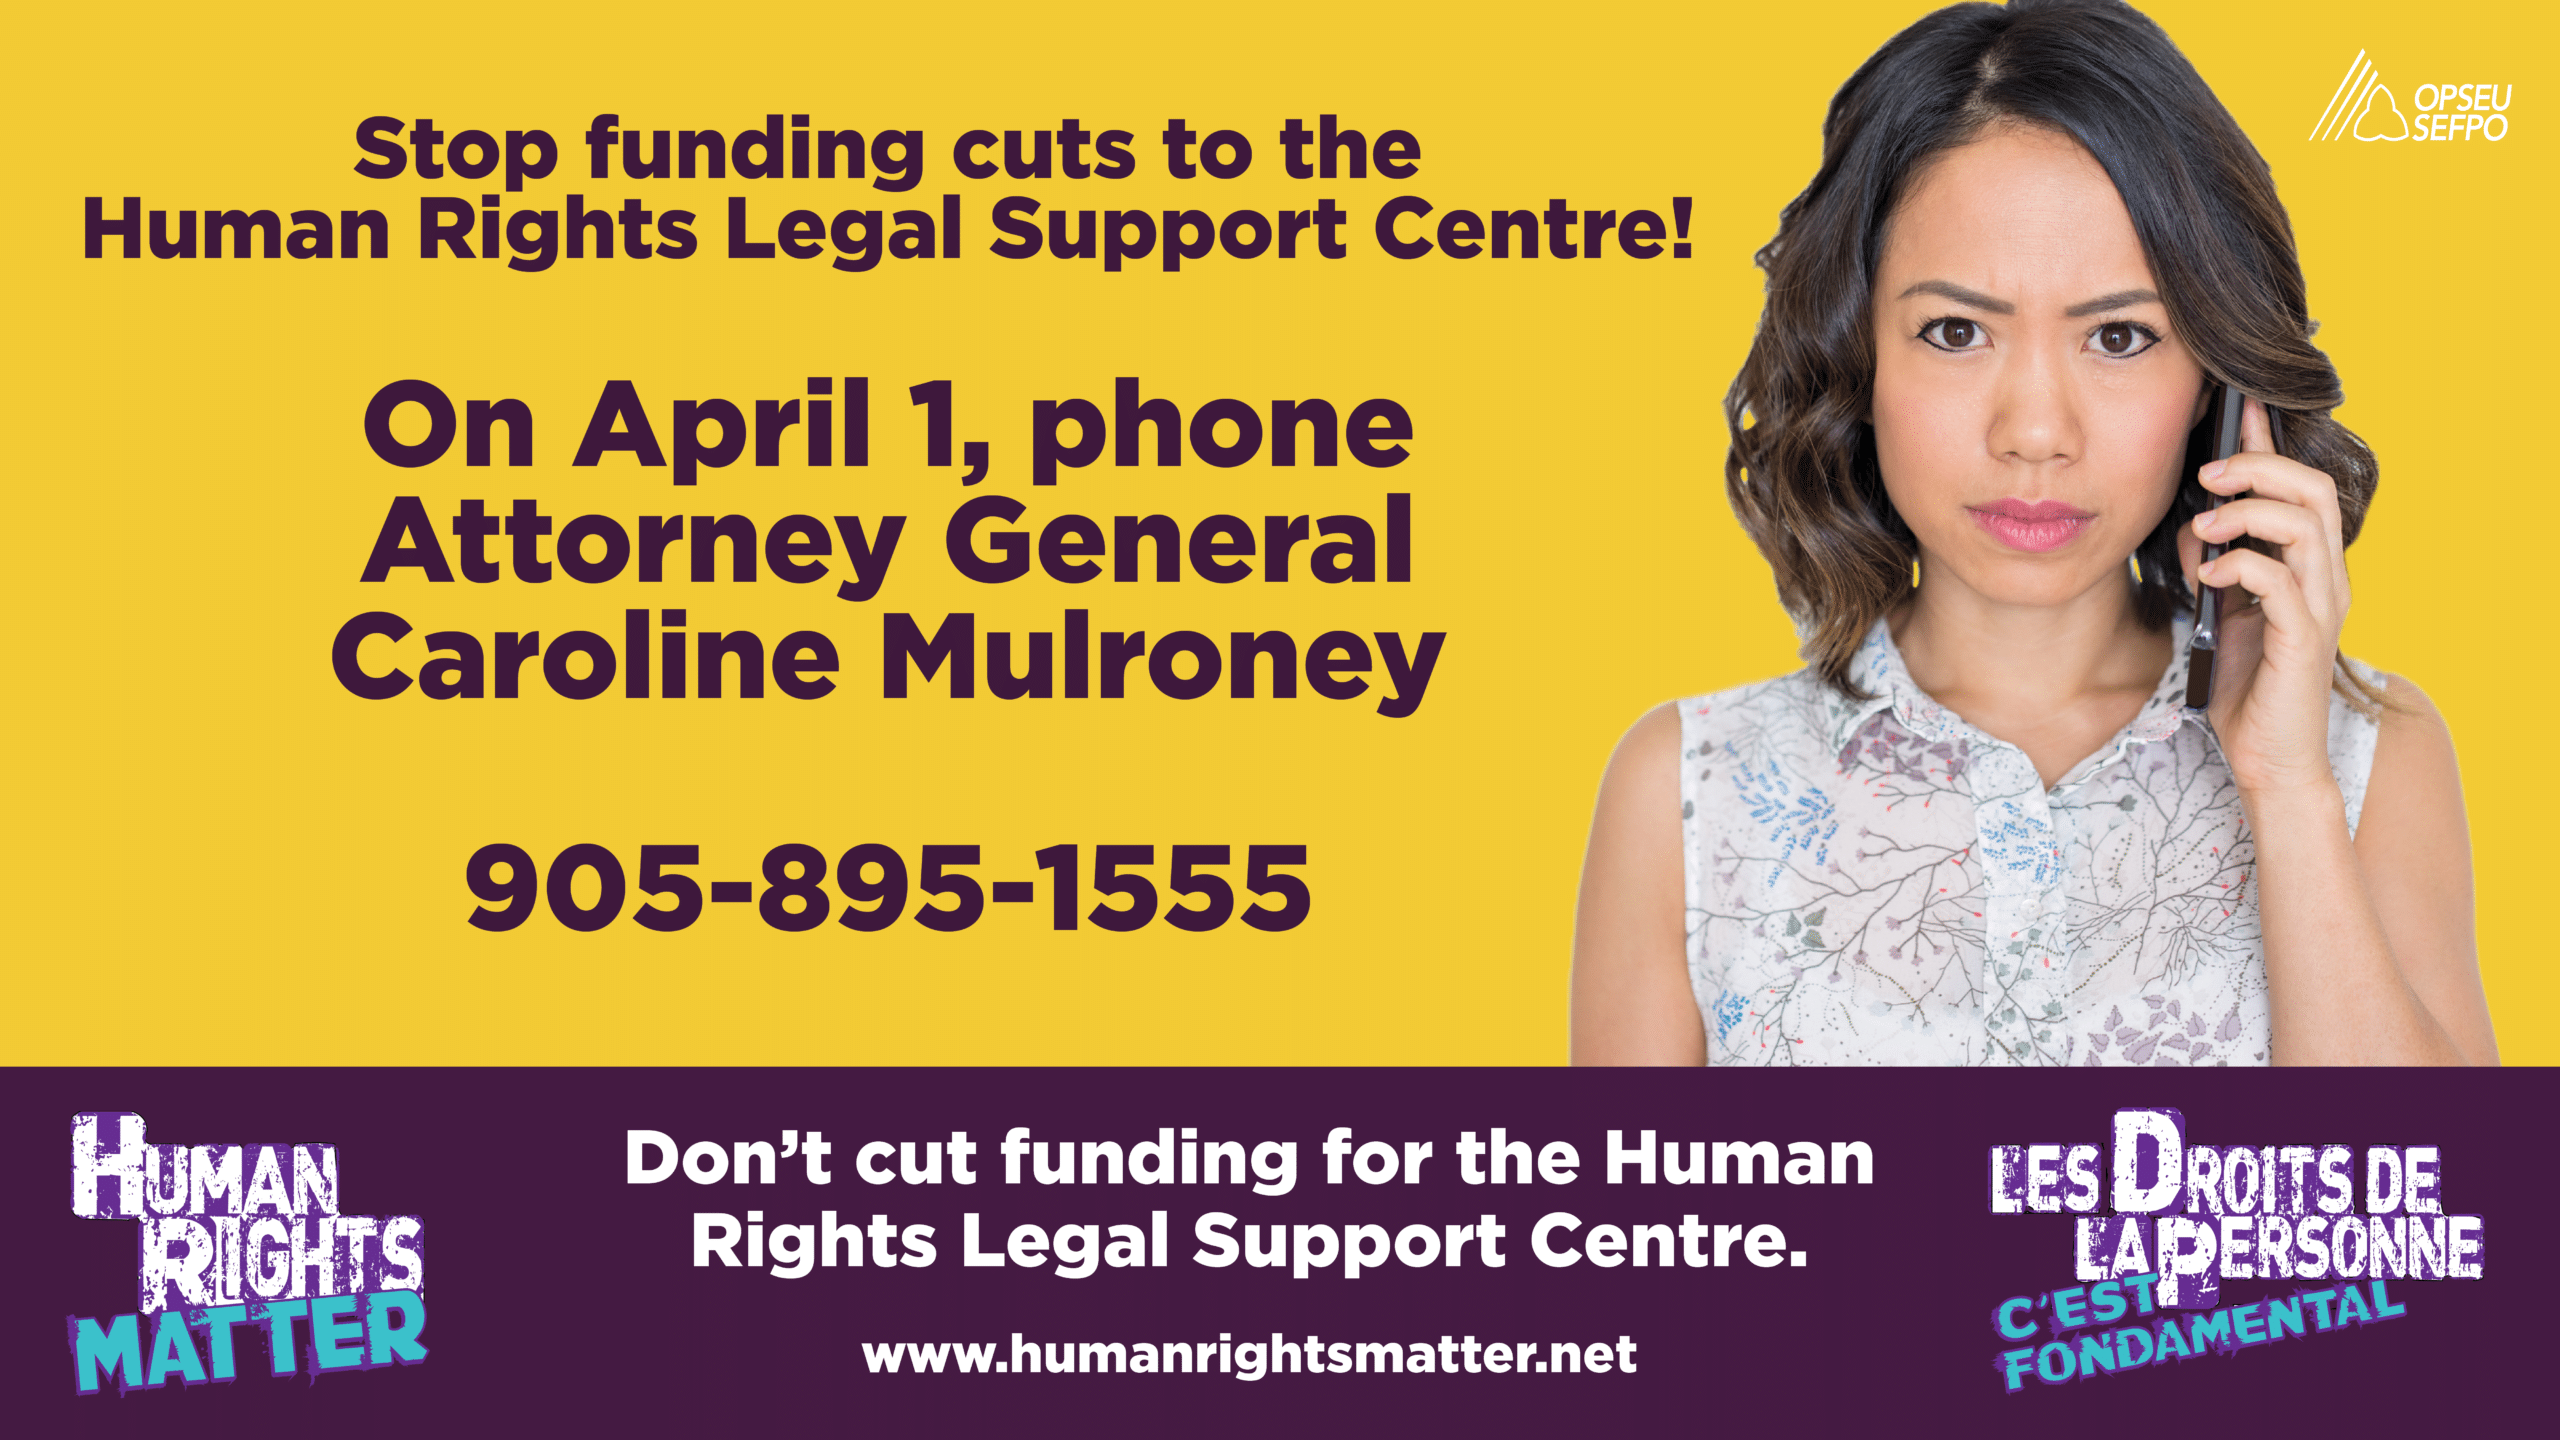 On April 1, phone Attorney General Caroline Mulroney 905-895-1555. Stop funding cuts to the Human Rights Legal Support Centre!